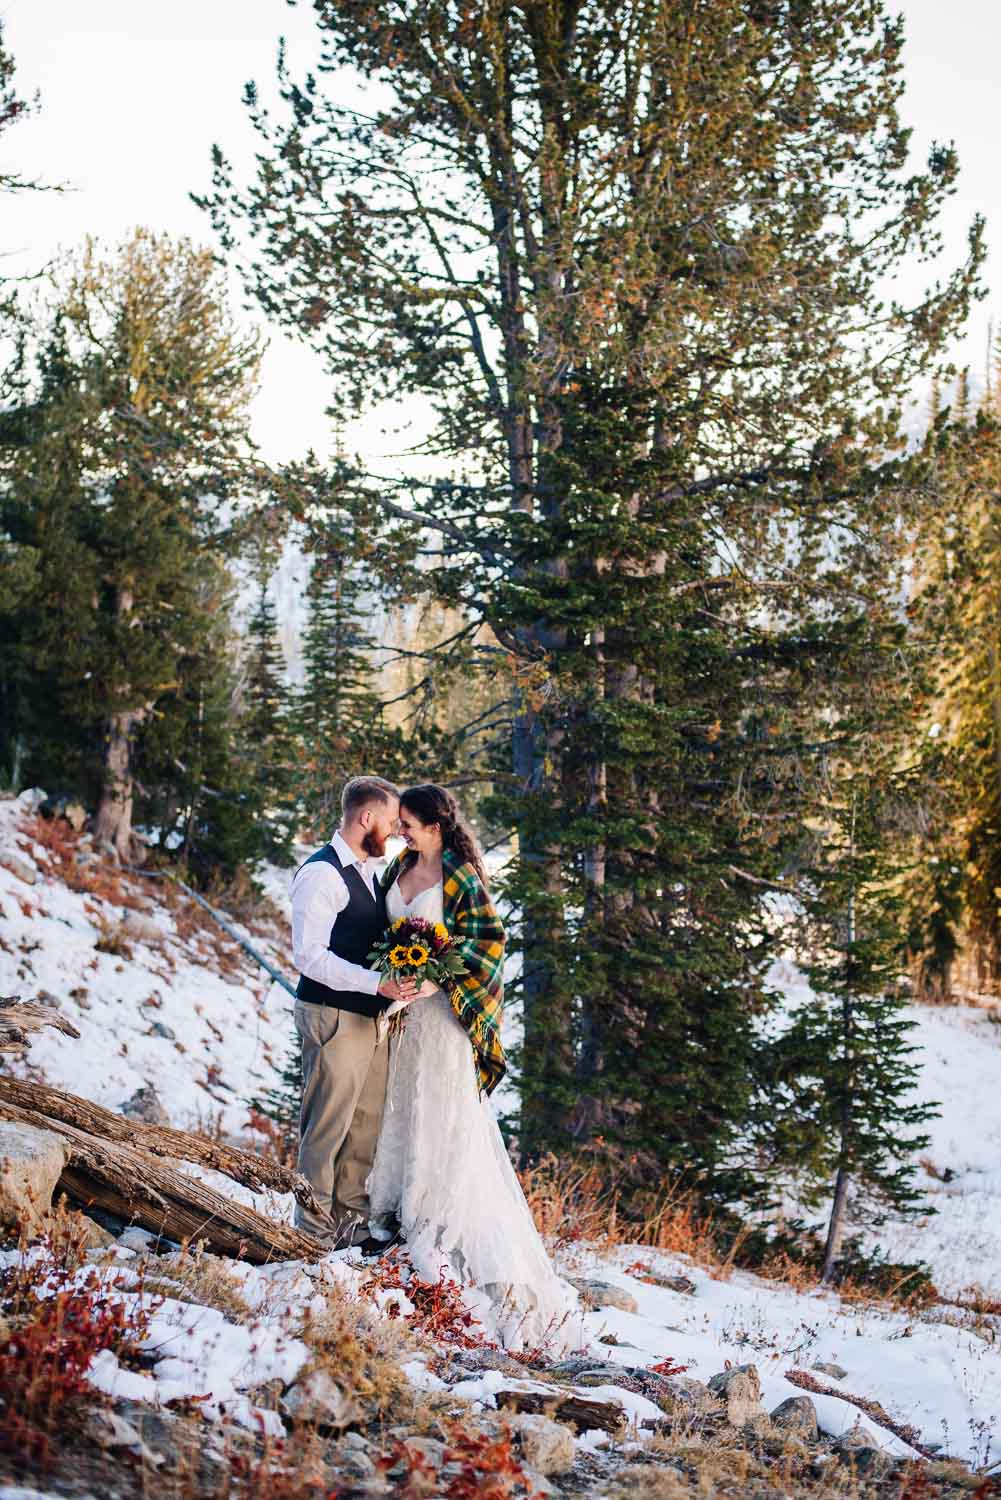 Blue Lake is an adventurous wedding venue in McCall Idaho. Couple standing on rock with pines behind them.